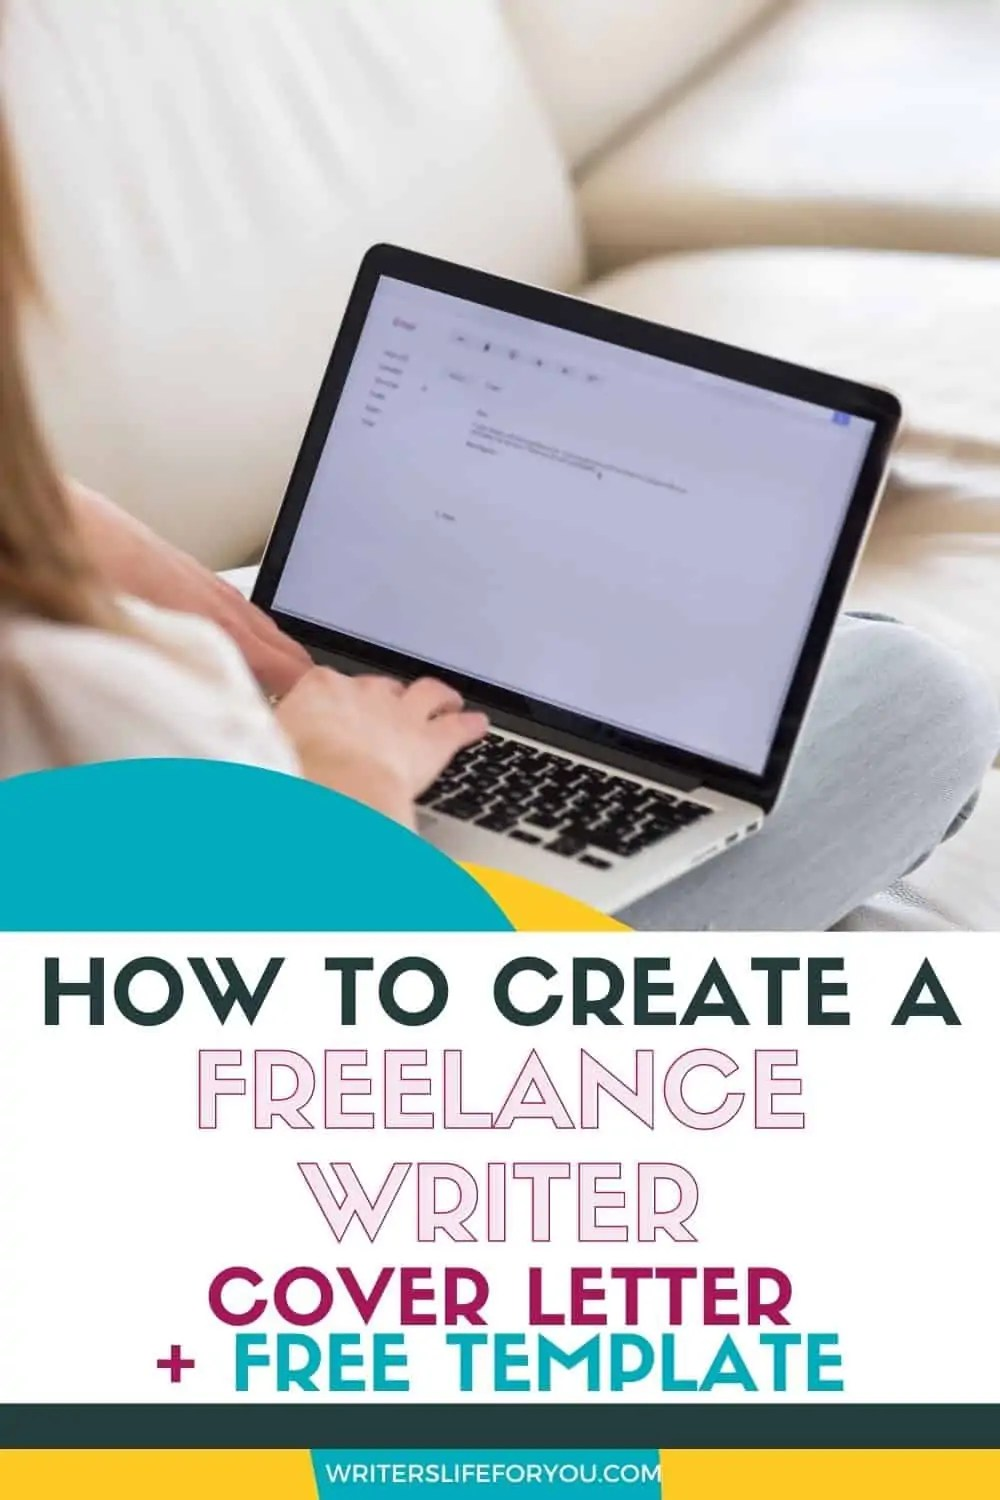 Cover Letter for Freelance Writer: How to Create One + FREE Template